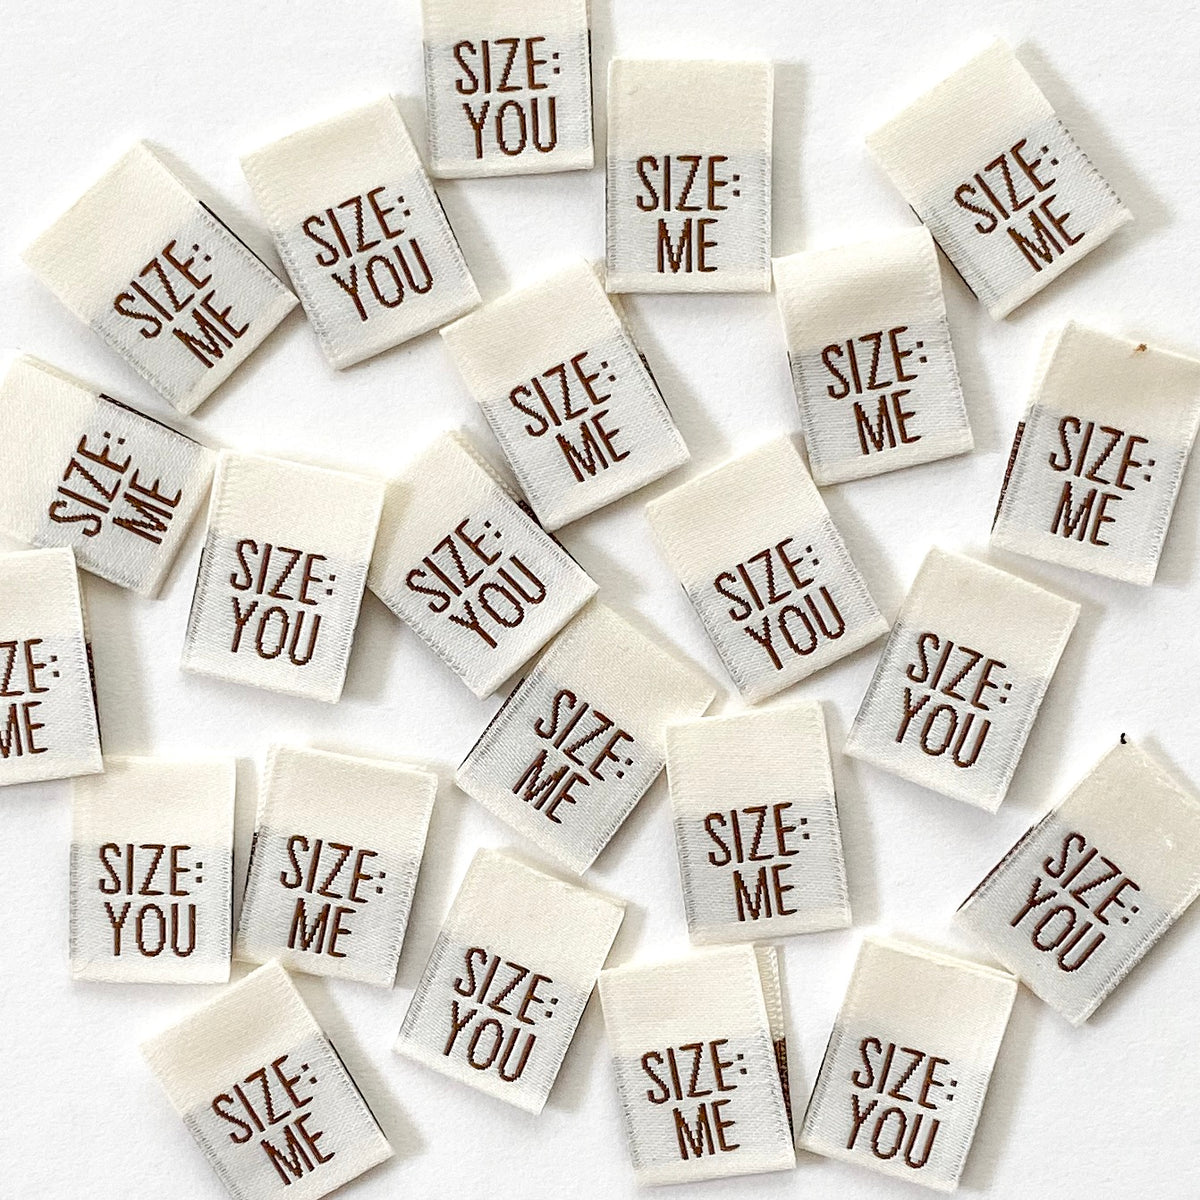 8 Woven Labels - Size: Me/ You - MaaiDesign